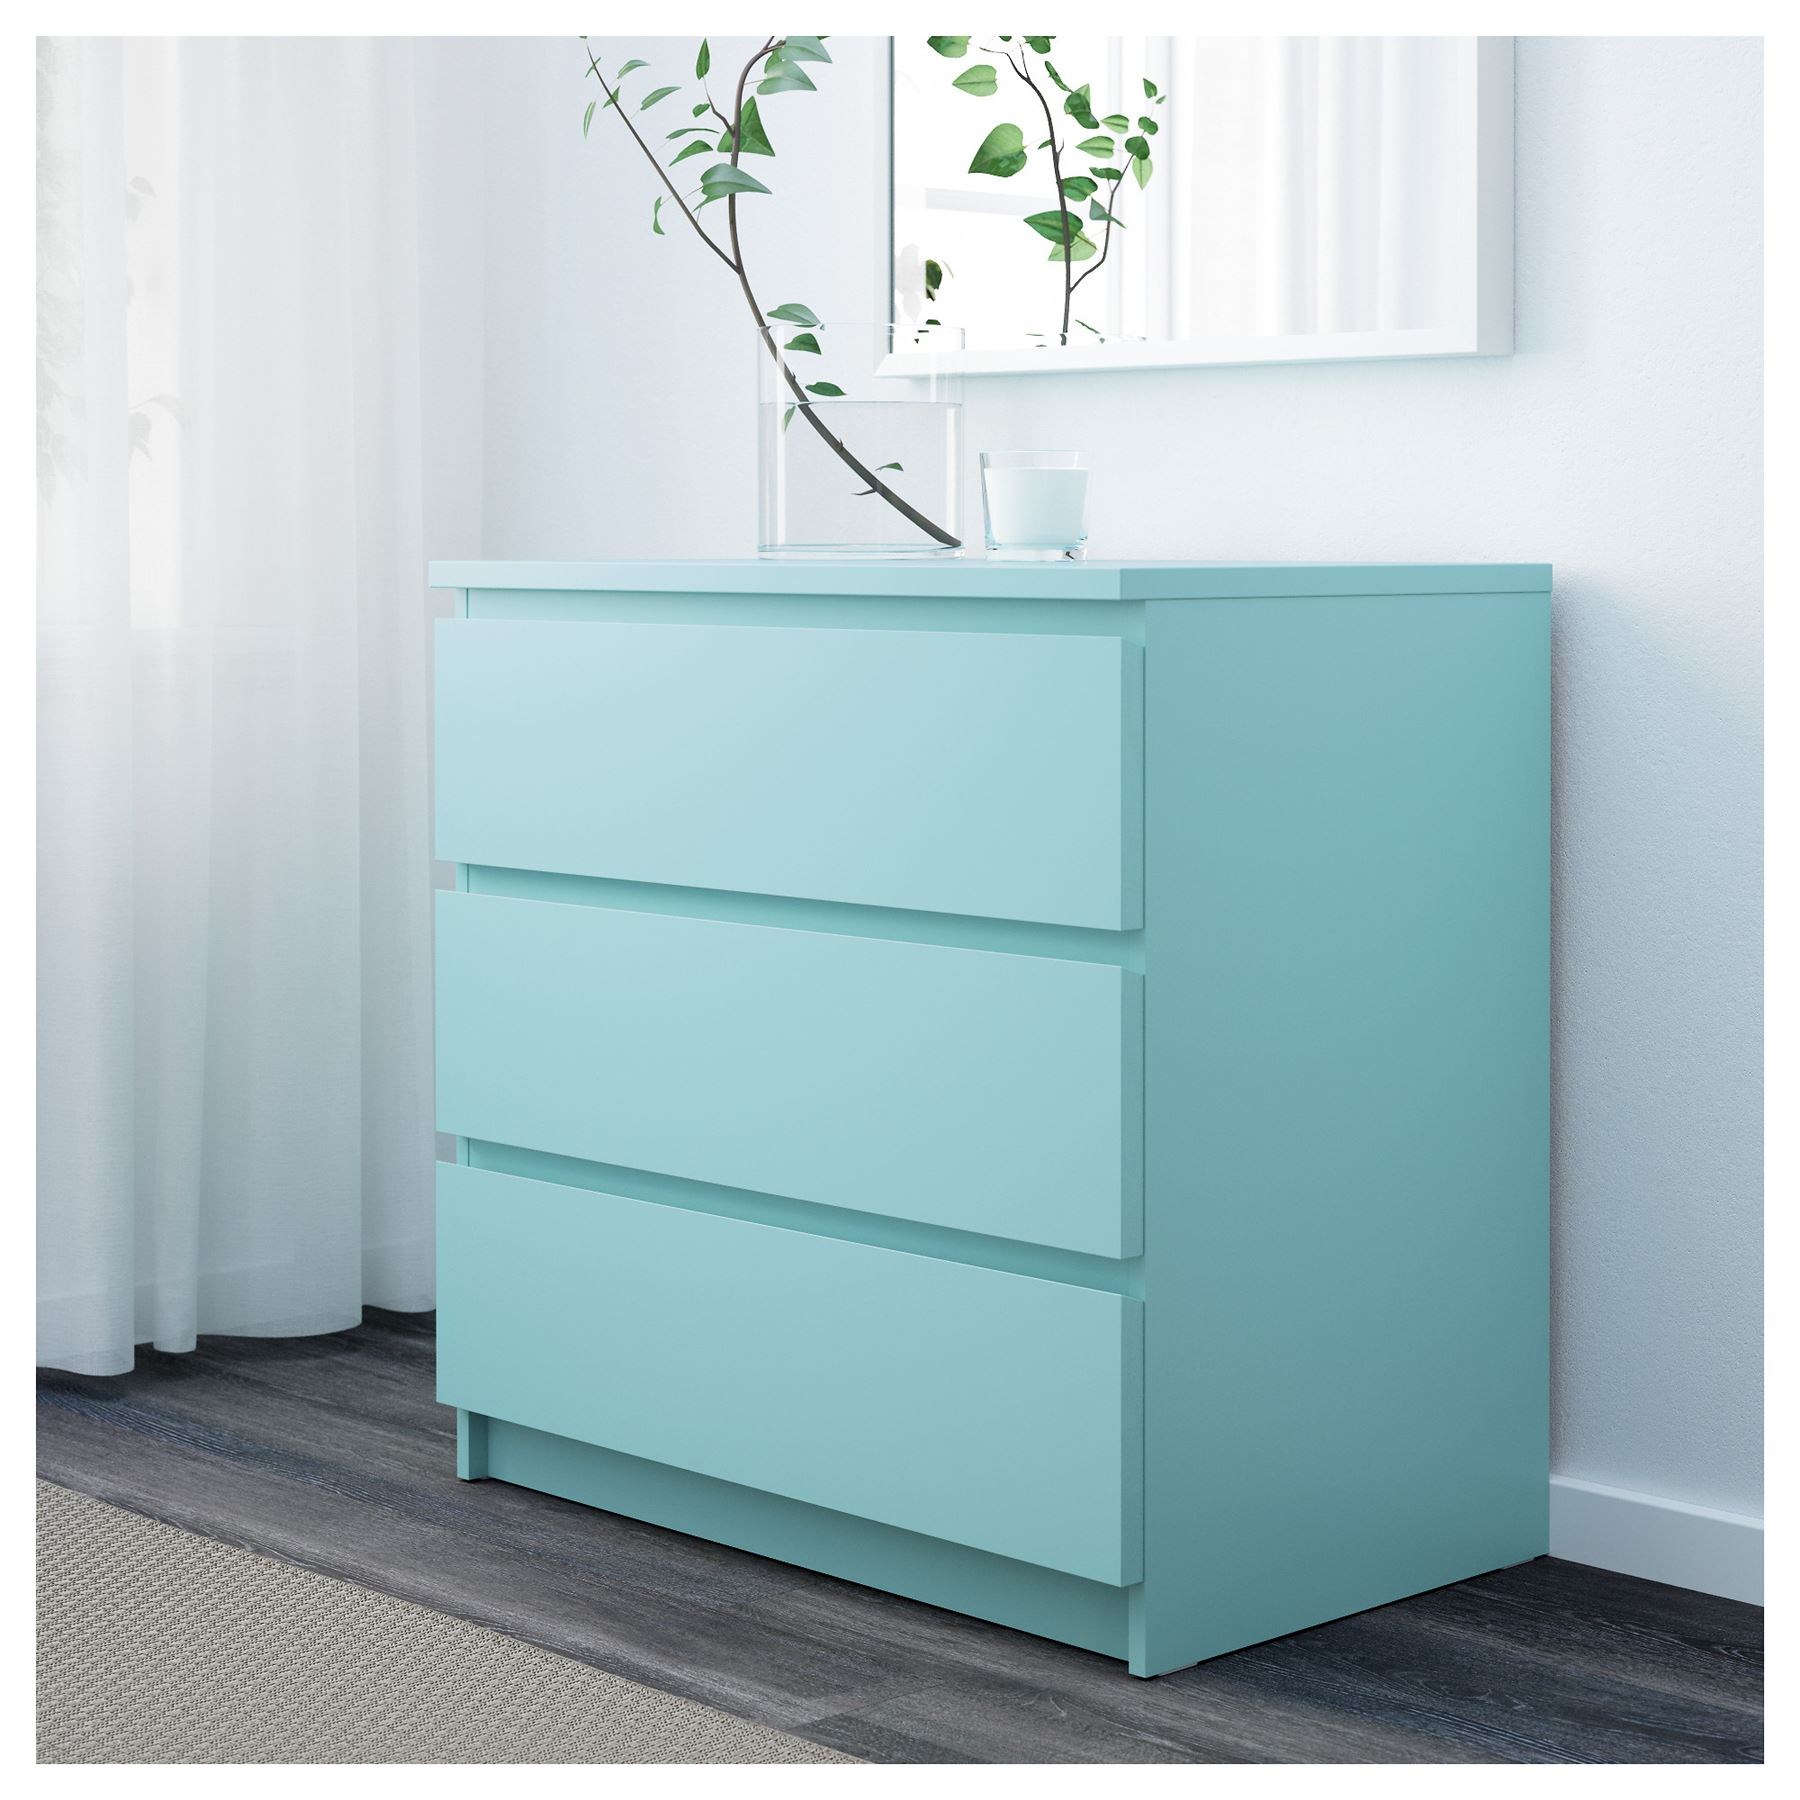 turquoise bedroom furniture. Ikea Malm Chest Of 3 Drawers 80x78cm Light Turquoise Bedroom Furniture E